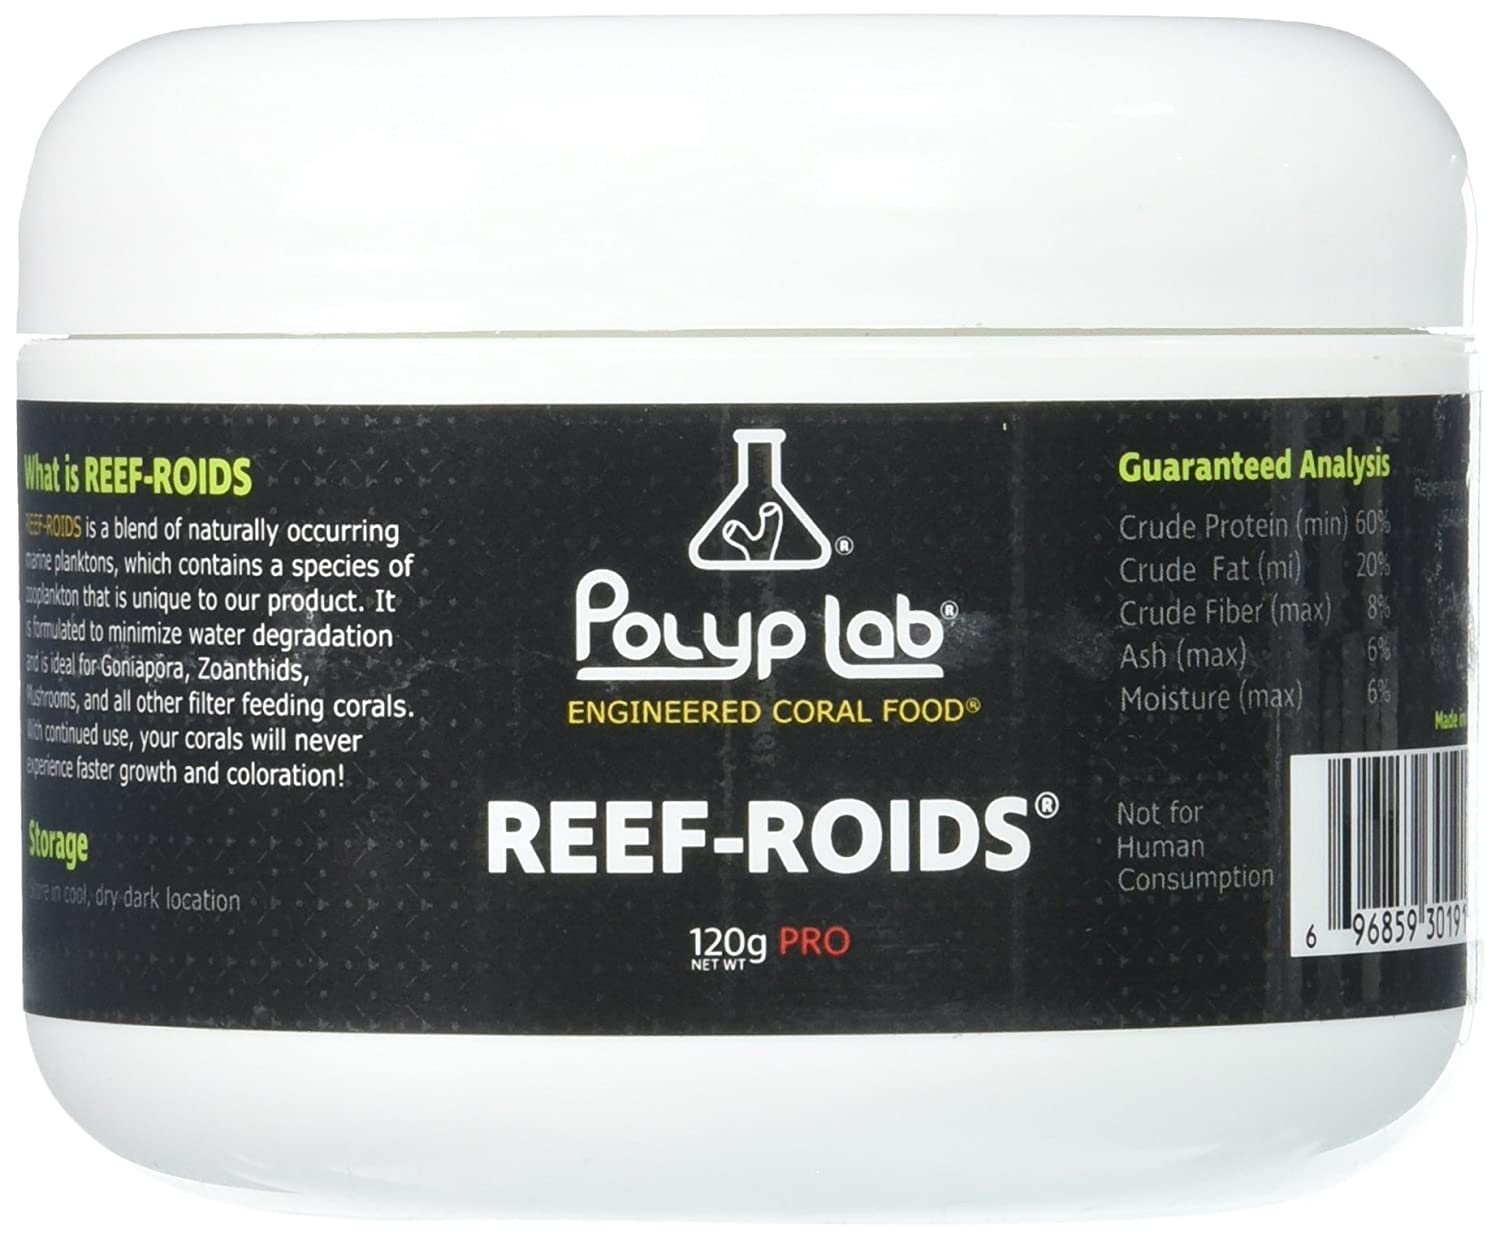 Polyplab - Professional Reef-Roids - Coral Food for Faster Growth - 120g